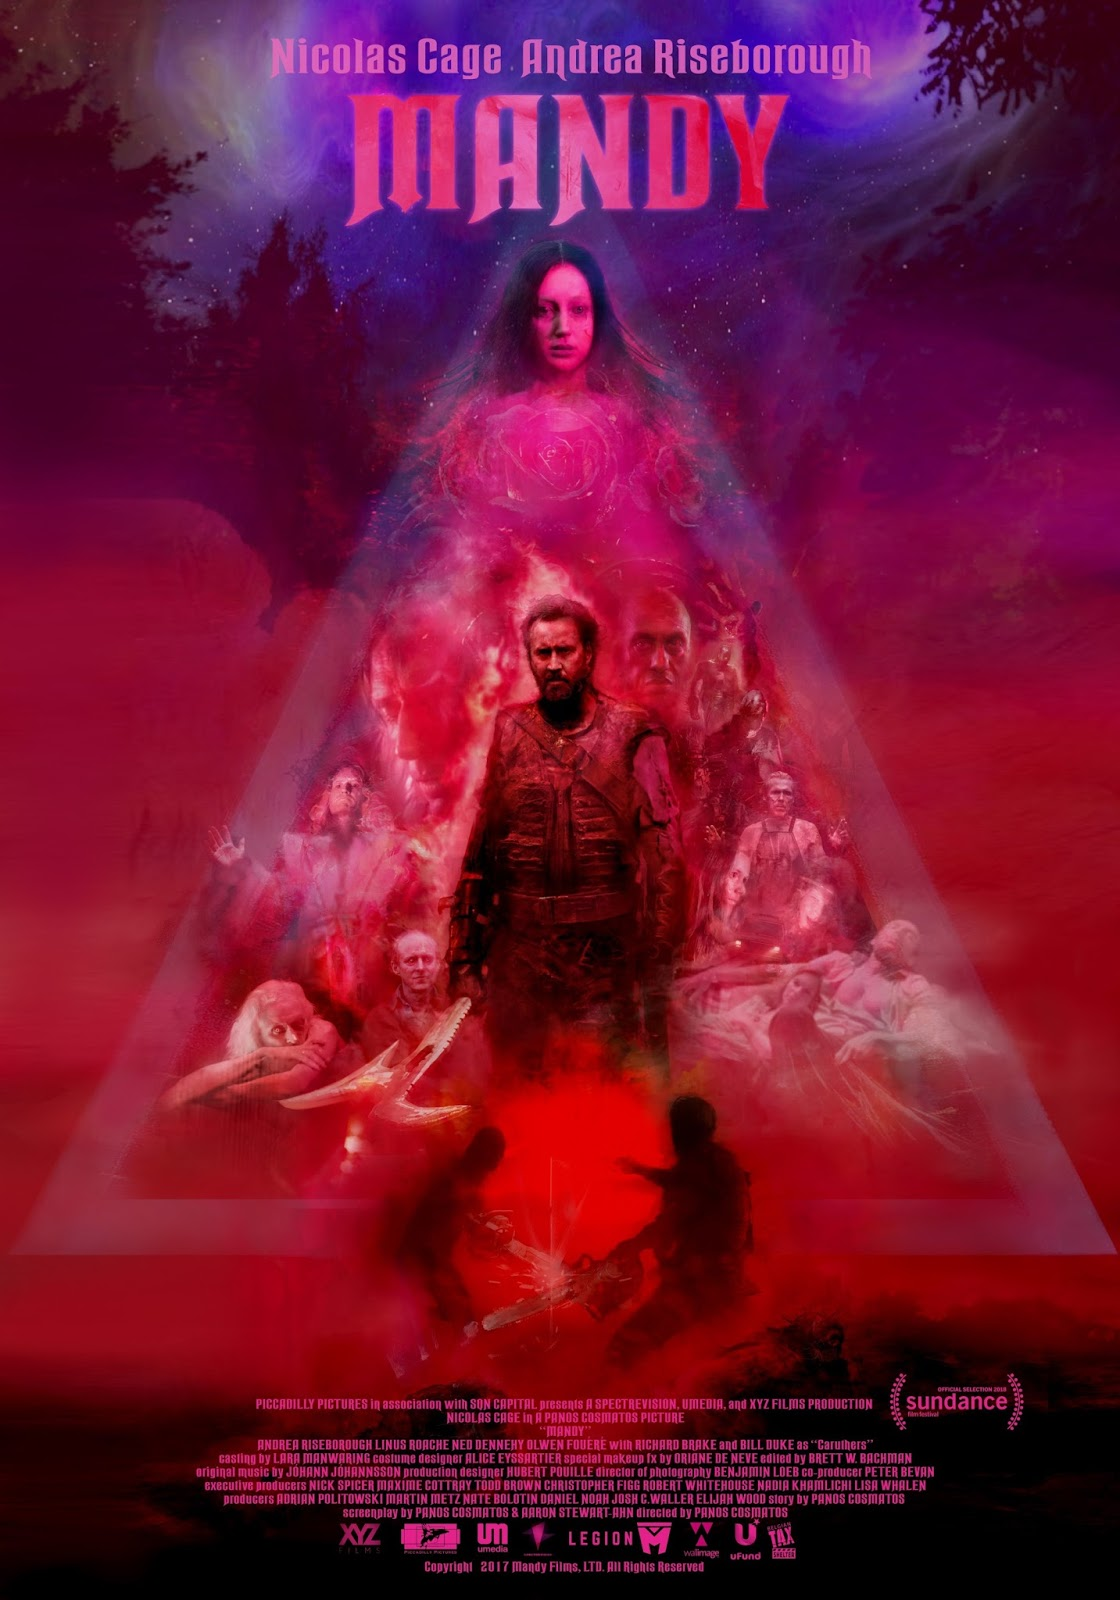 Trailers: The Bloody Horror Film Mandy Starring Nicolas Cage